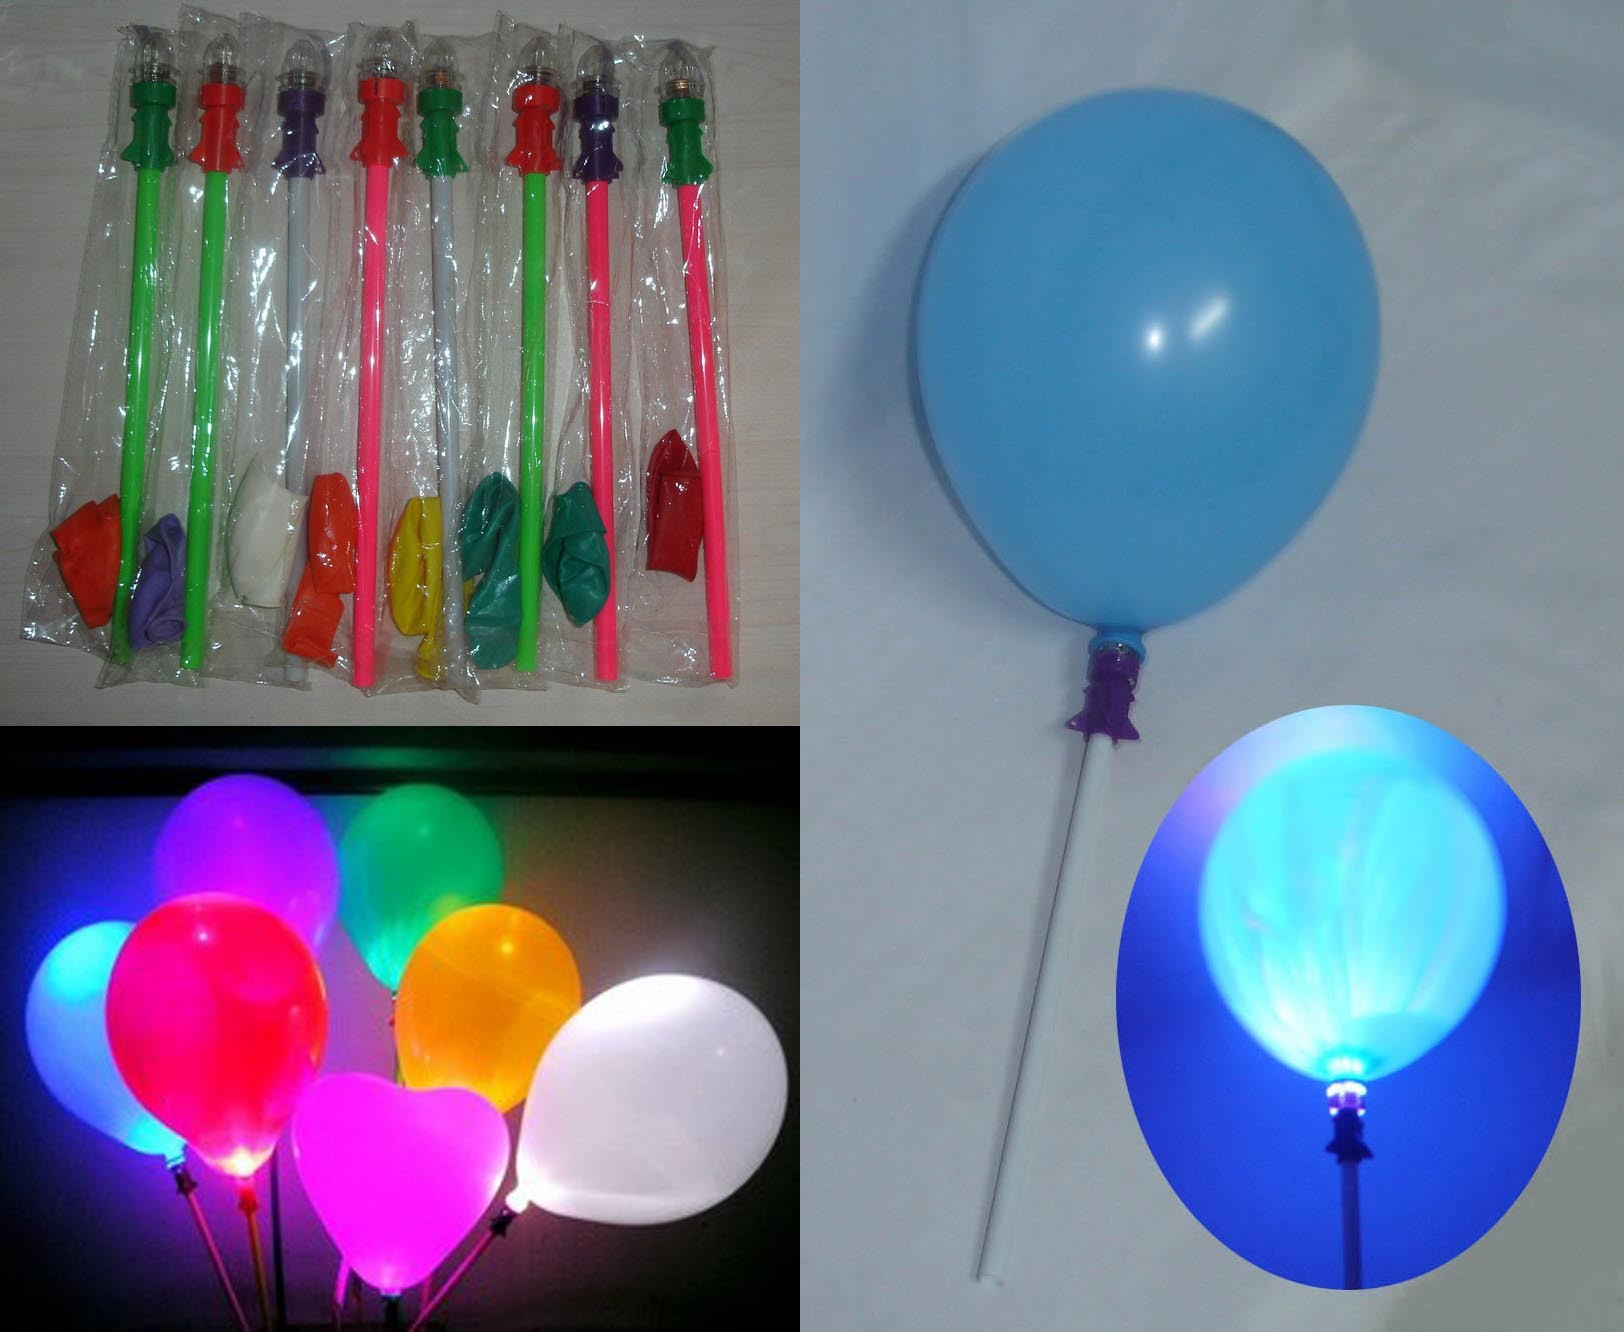 restaurant reservation led balloons. Black Bedroom Furniture Sets. Home Design Ideas